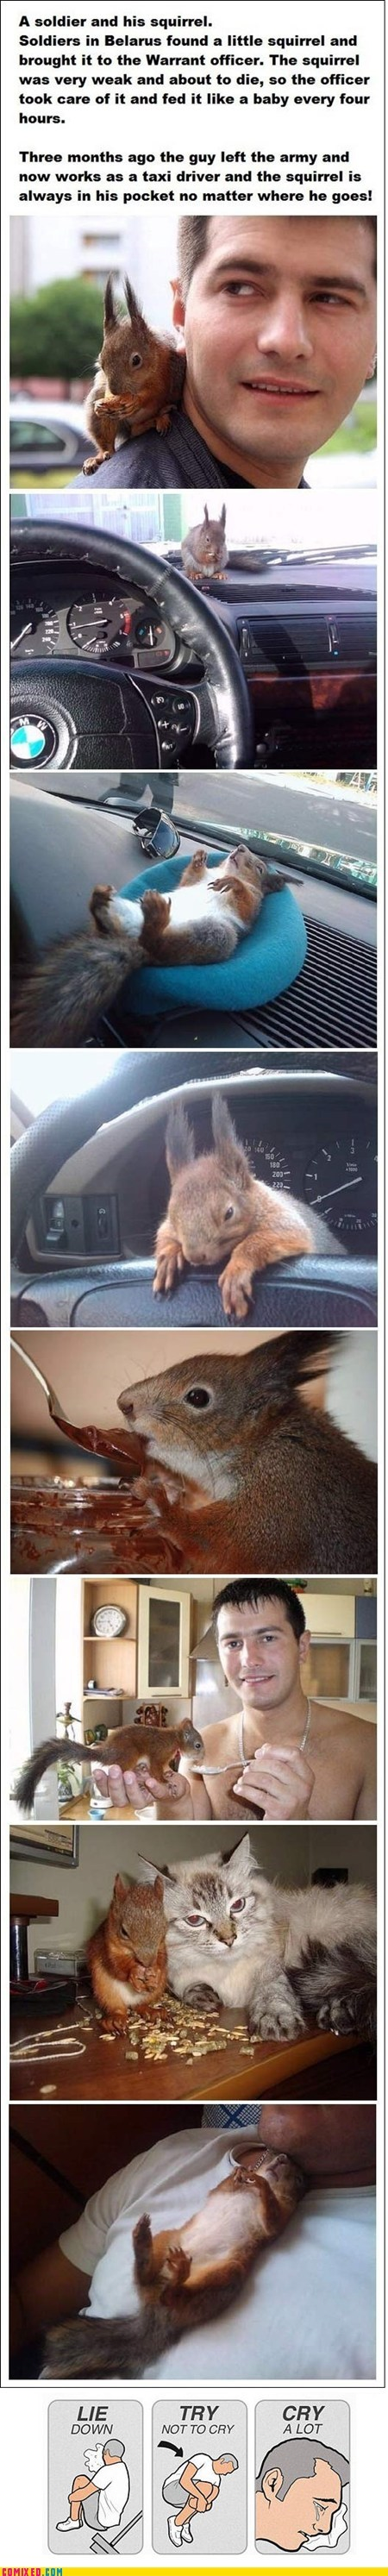 try not to cry squirrel cute solider restoring faith in humanity week - 6962246656